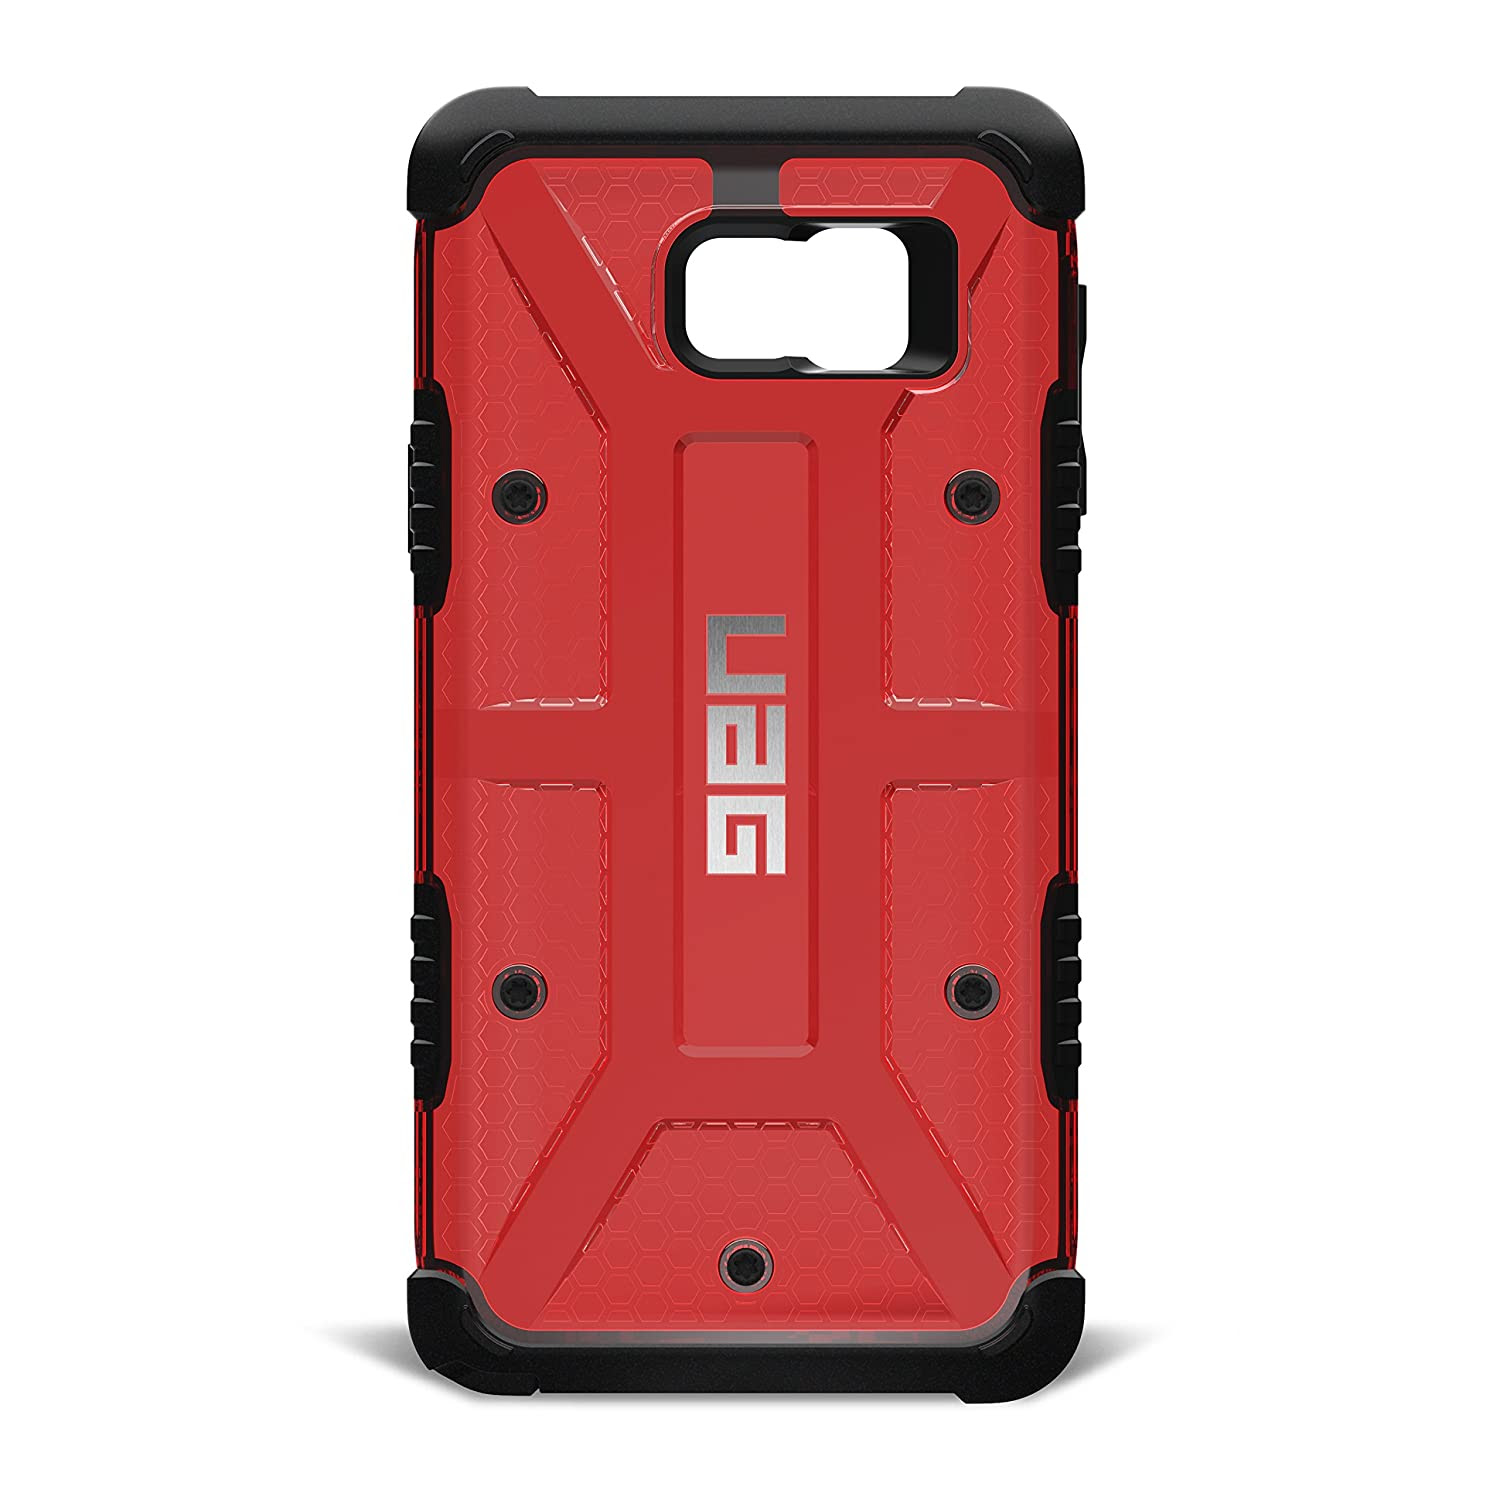 URBAN ARMOR GEAR Cell Phone Case for Galaxy Note 5